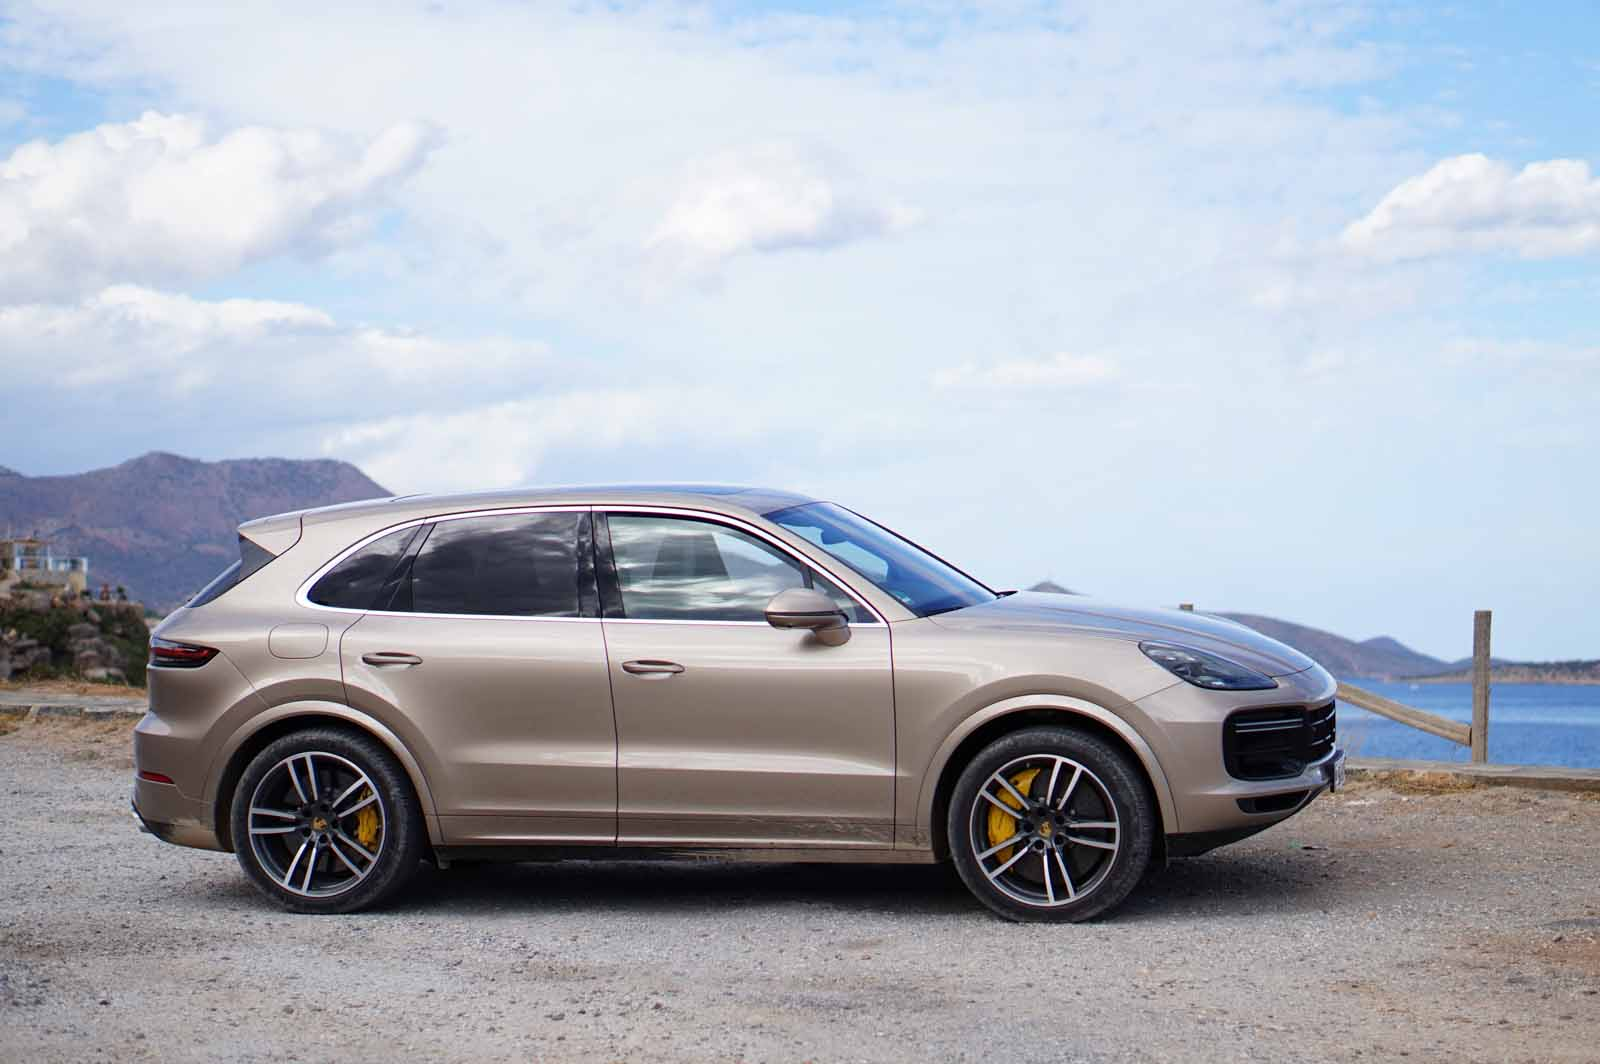 57 Best Review 2019 Porsche Cayenne Performance by 2019 Porsche Cayenne